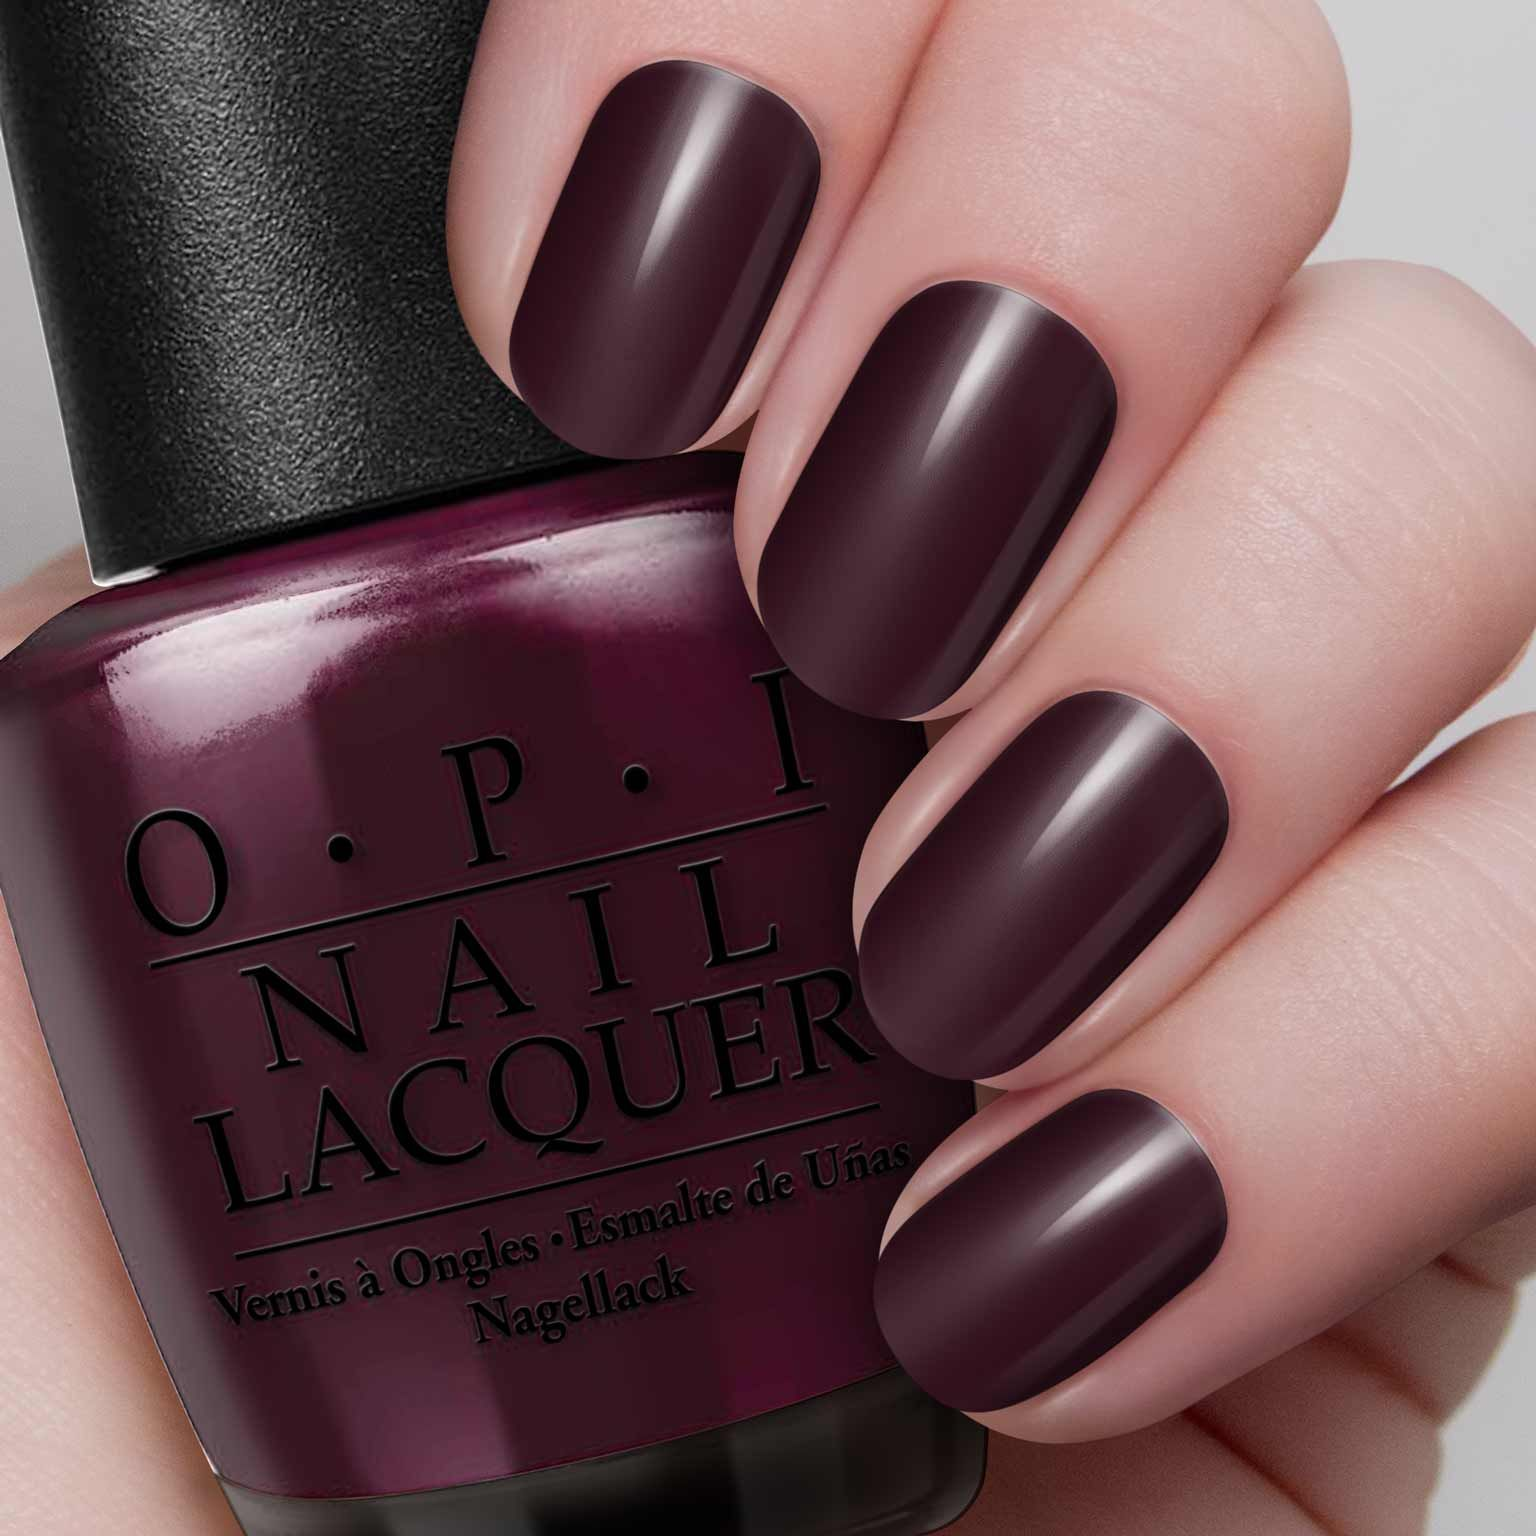 Discover Our Complete Range Of Nail Colours From Clic Lacquer Infinite Shine Polish That Lasts Up To 10 Days All Opi